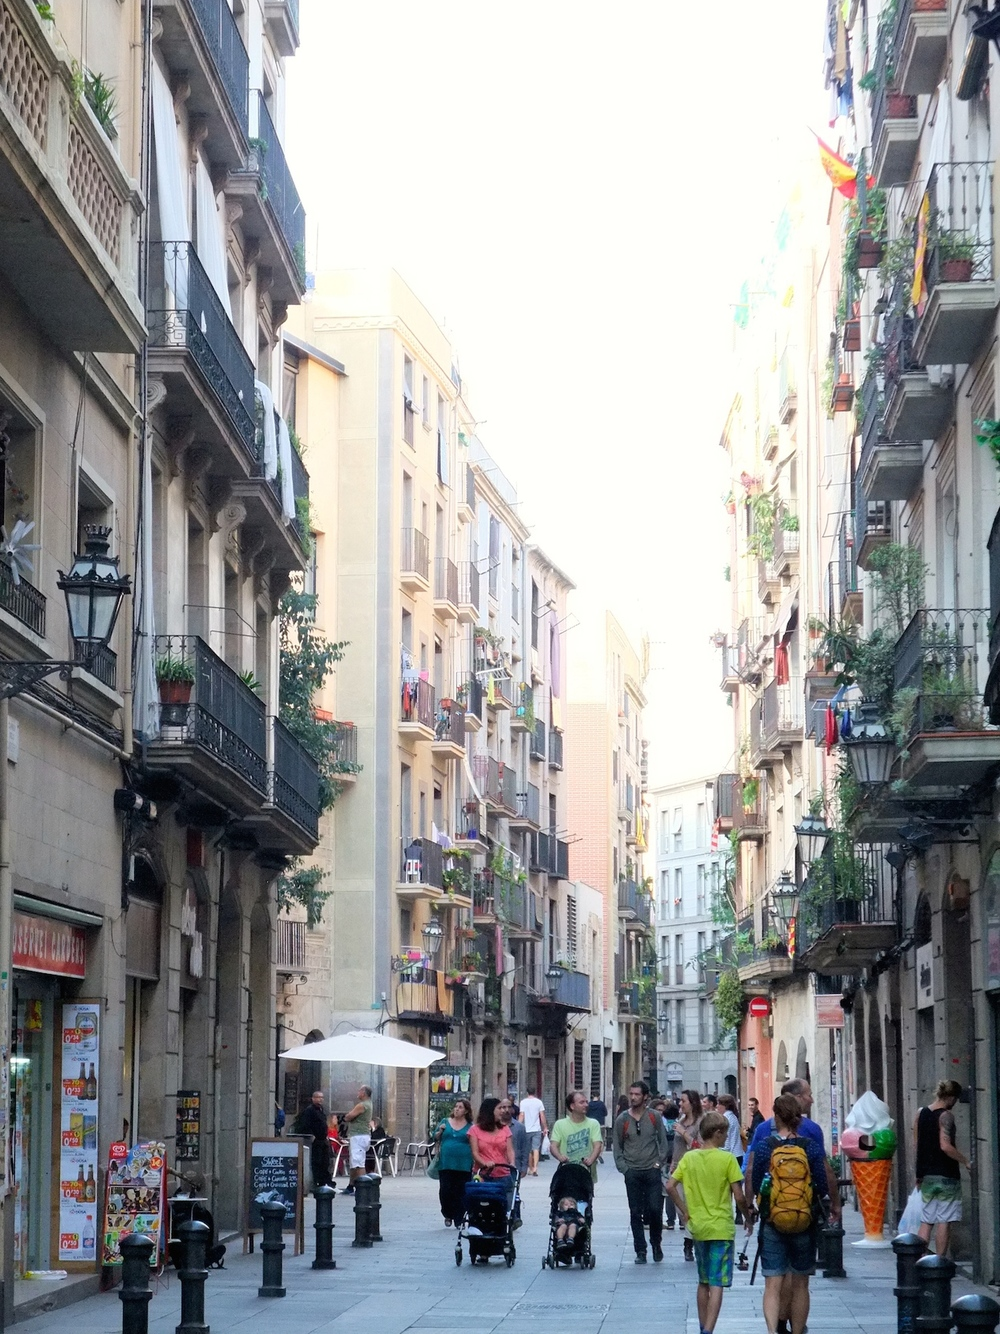 Walking around the center of Barcelona